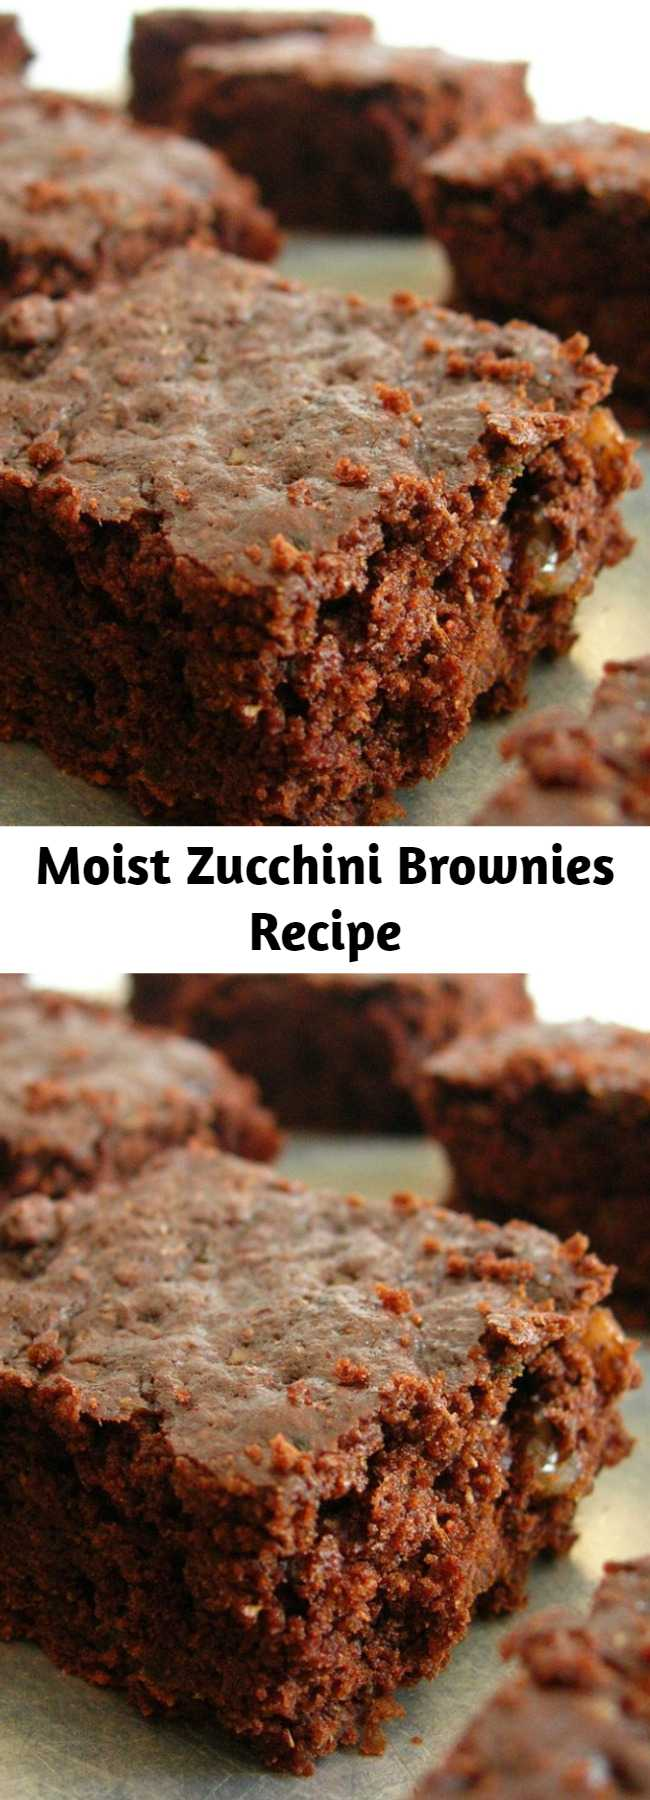 Moist Zucchini Brownies Recipe - Moist chocolate brownies with frosting!